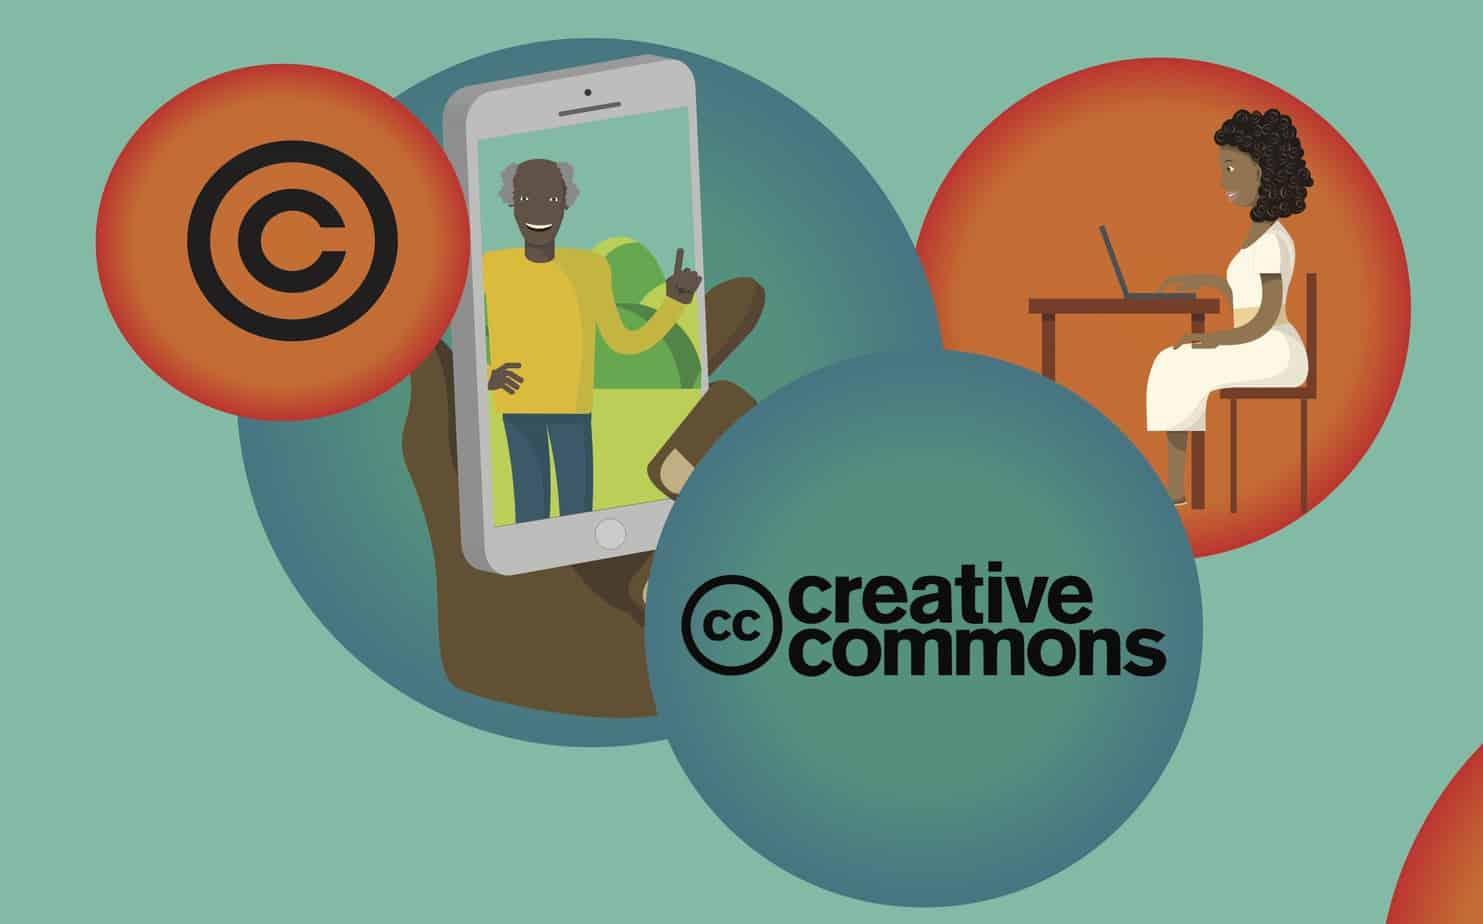 Copyright vs Creative Commons – what's the difference?